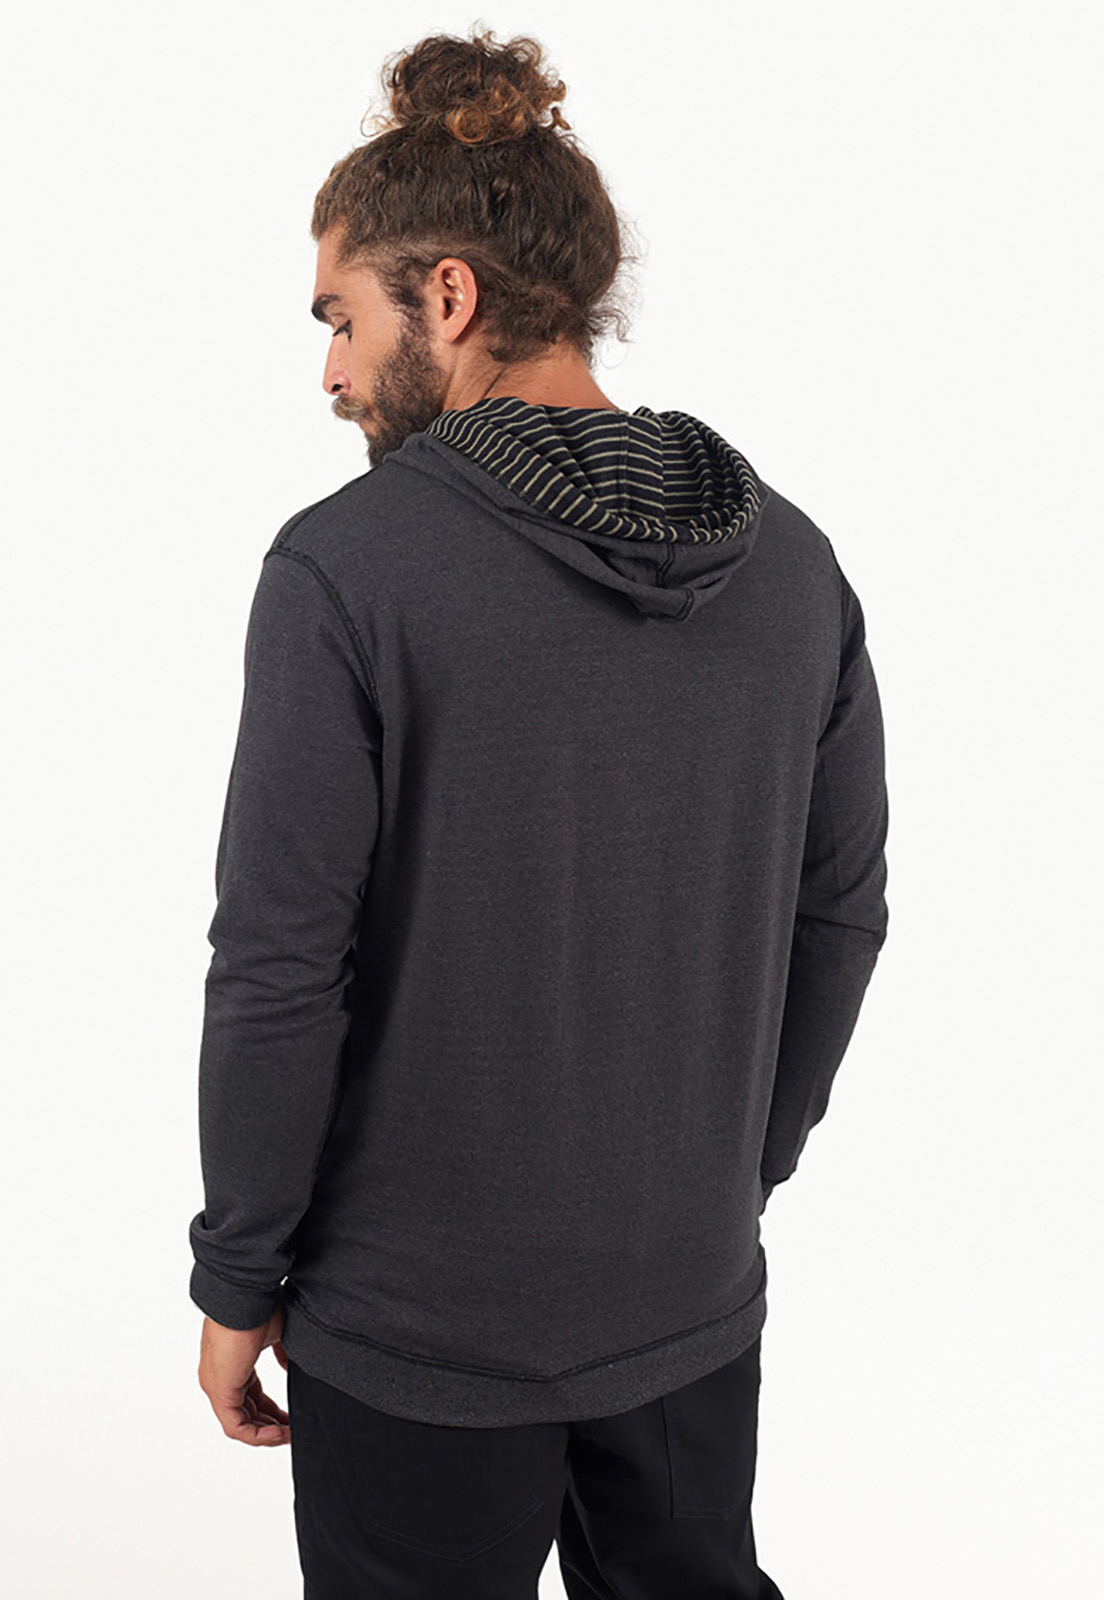 Casaco Hoodie duplo melty  - melty surf & Co.